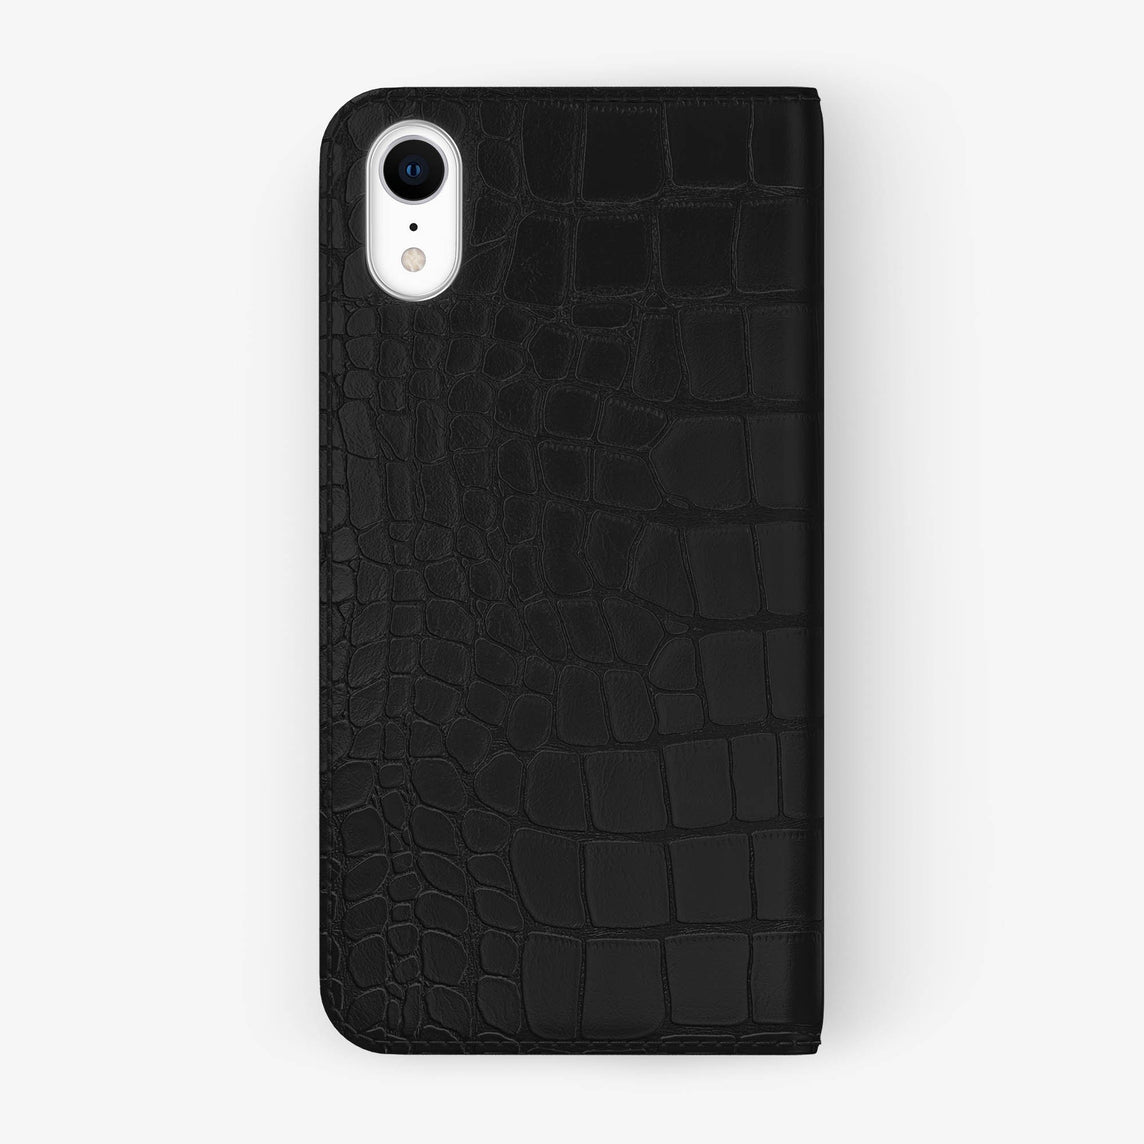 Alligator [iPhone Folio Case] [model:iphone-xr-case] [colour:phantom-black] [finishing:stainless-steel]